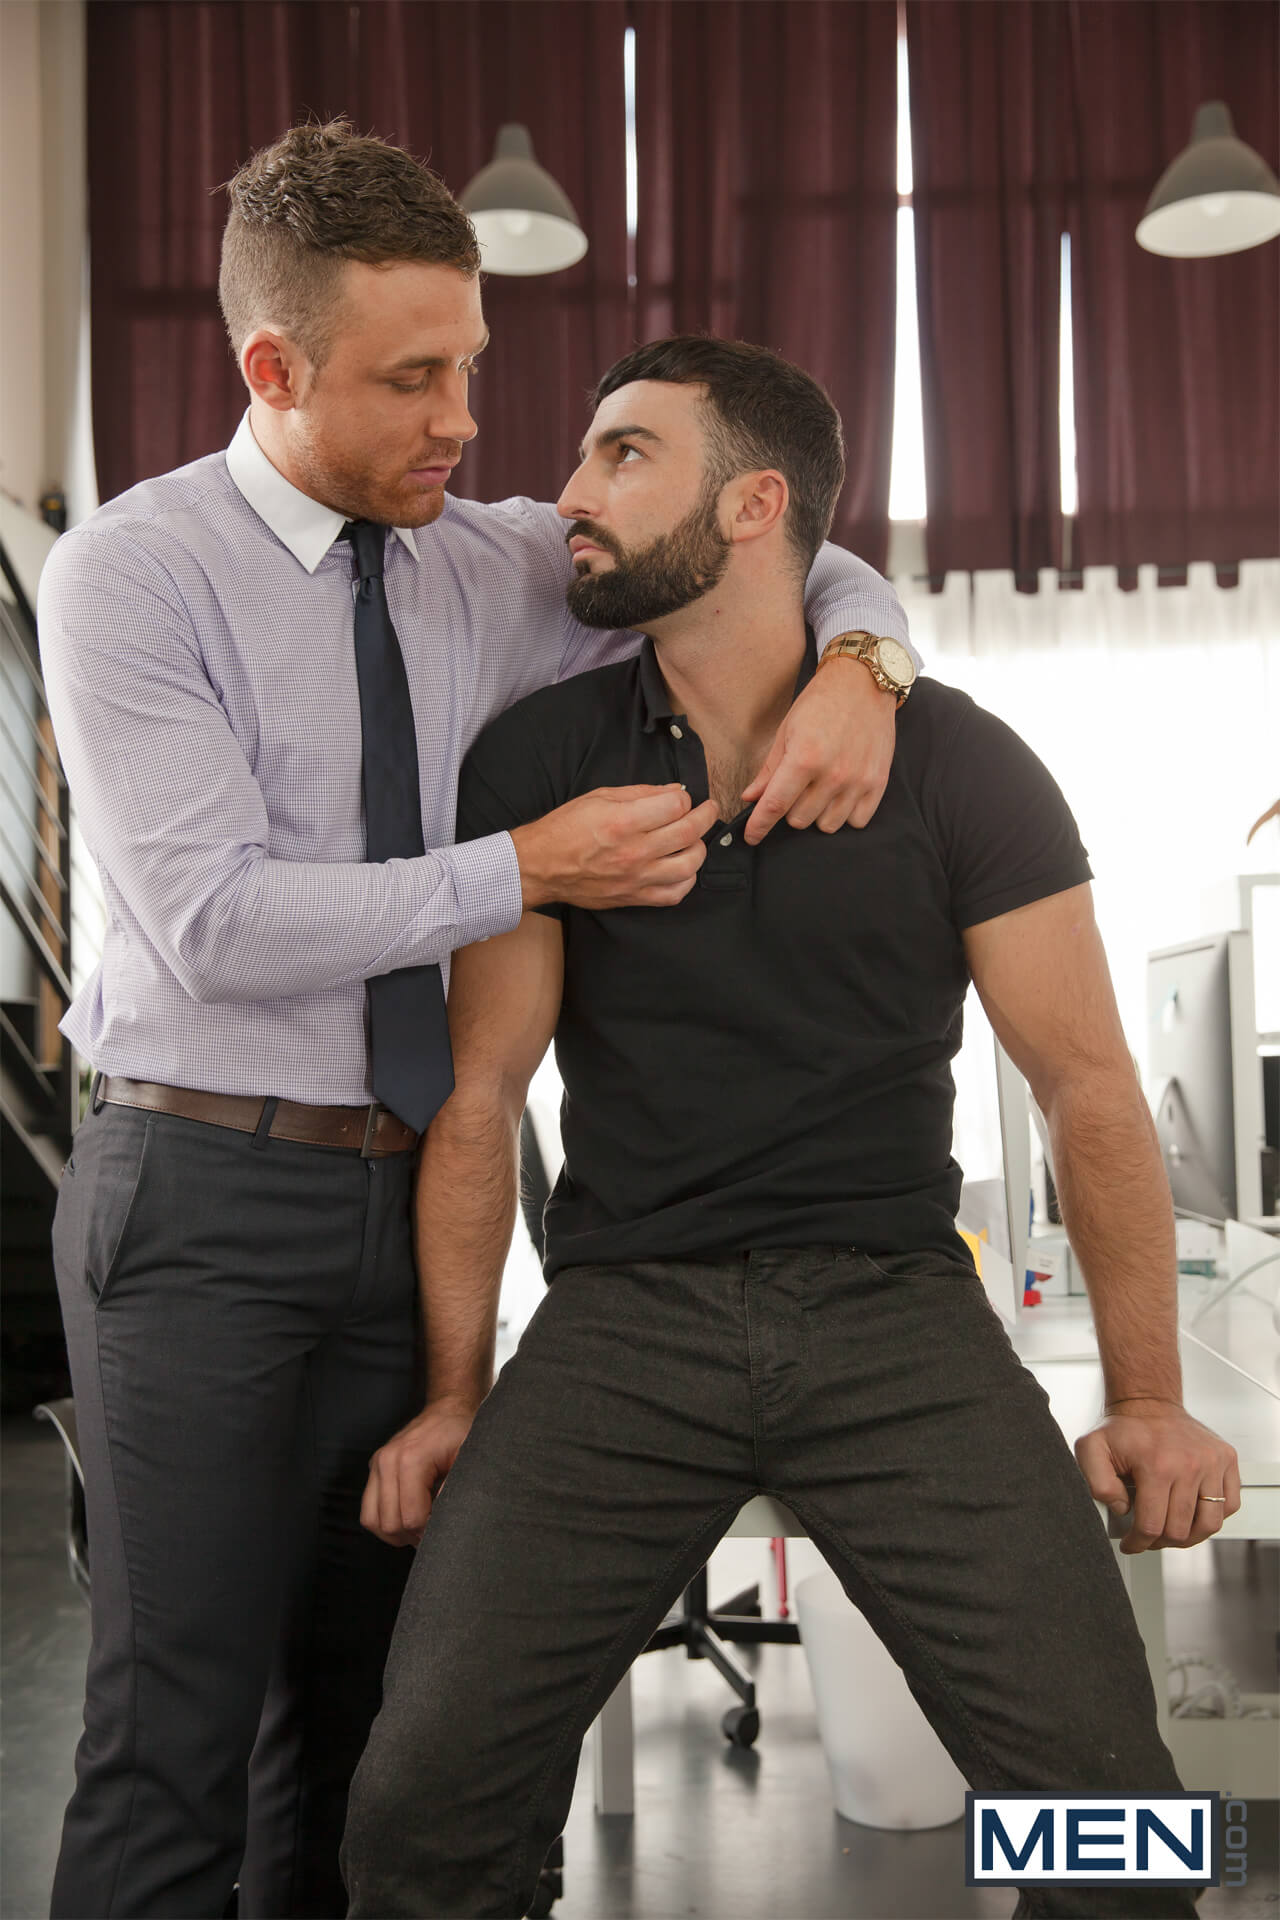 men the gay office executive brothel part 2 abraham al malek logan moore gay porn blog image 5